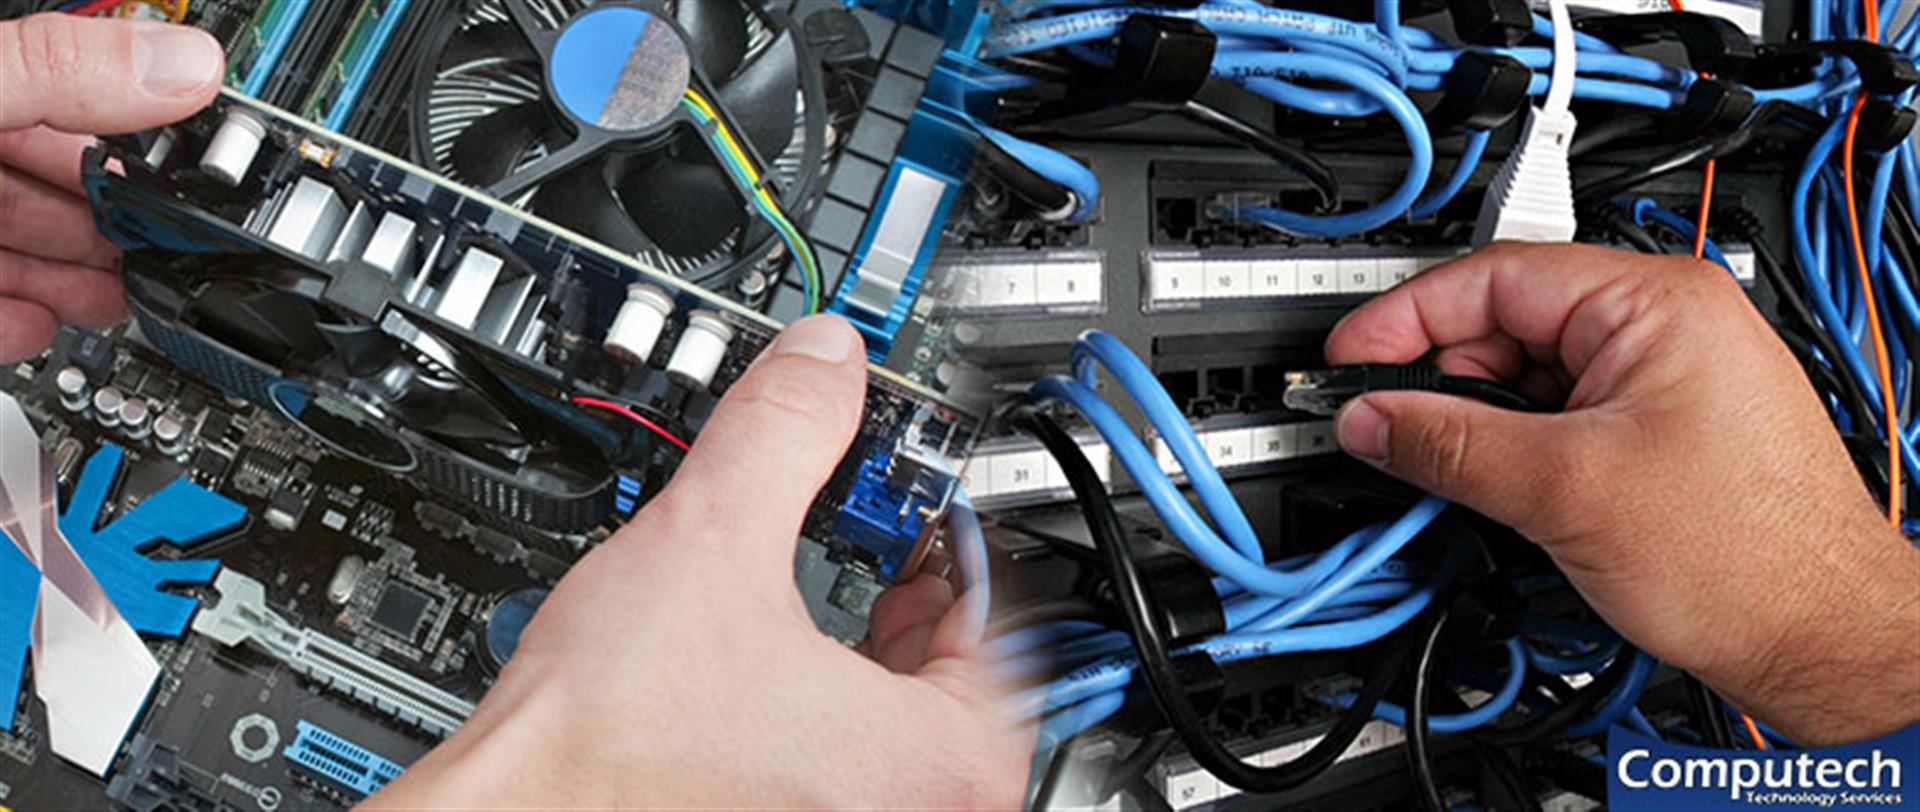 Temple Georgia On Site Computer & Printer Repair, Network, Voice & Data Cabling Services